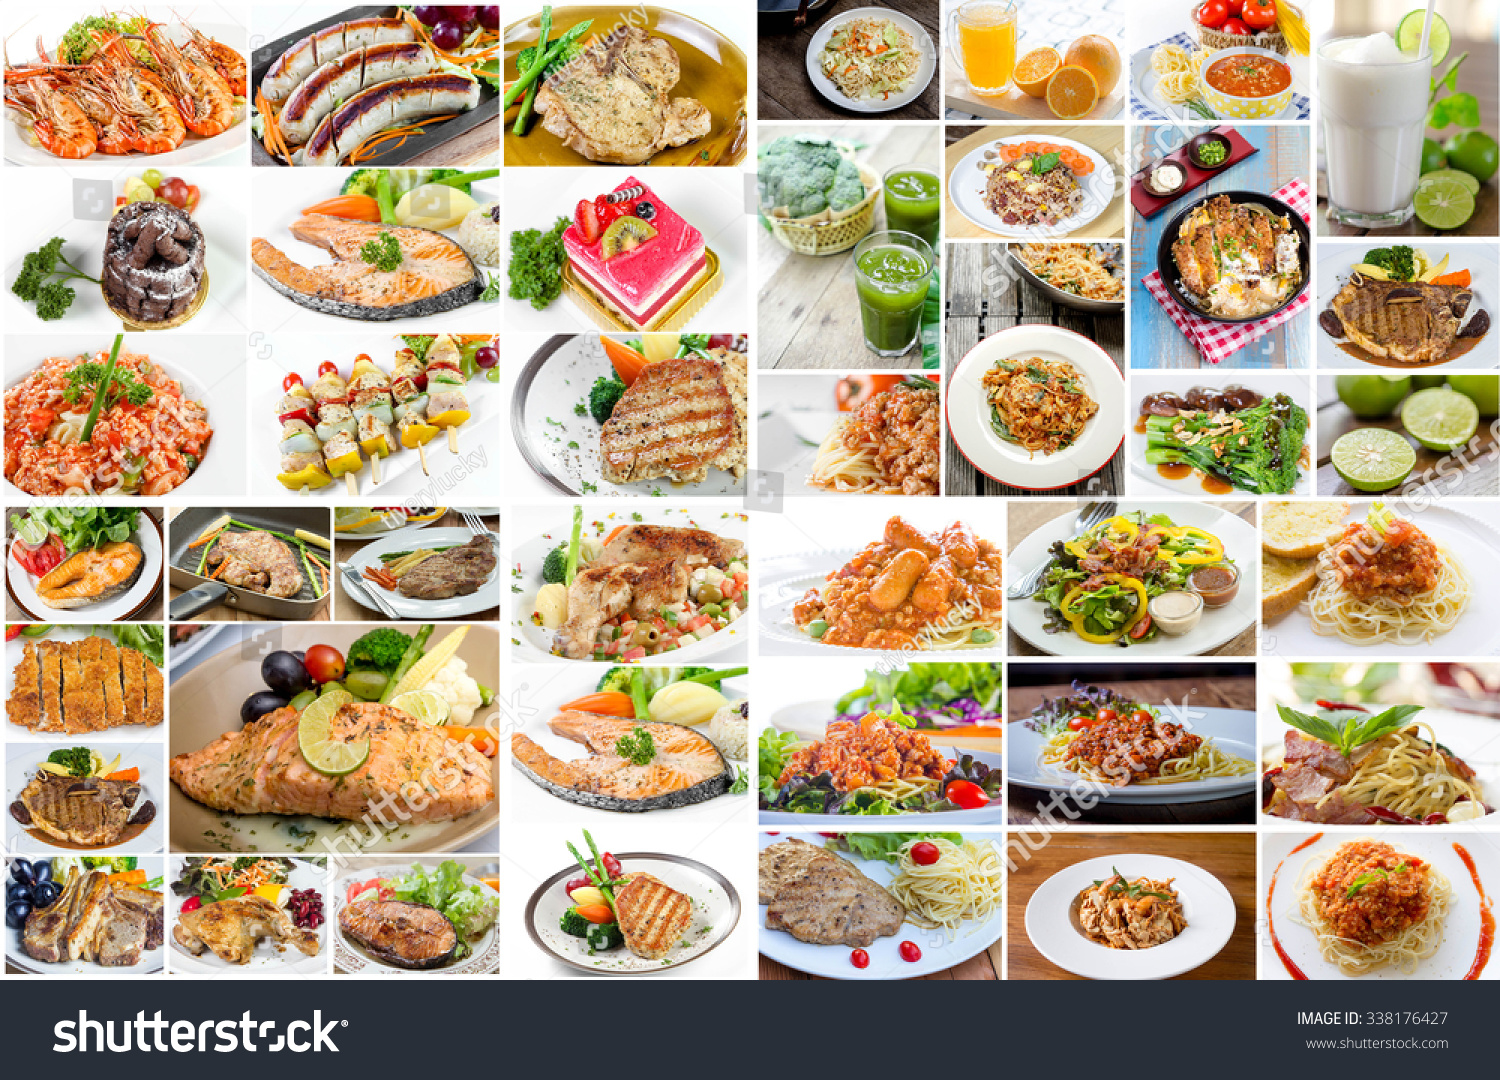 Collage food menu asian american chinese 338176427 for Asian american cuisine